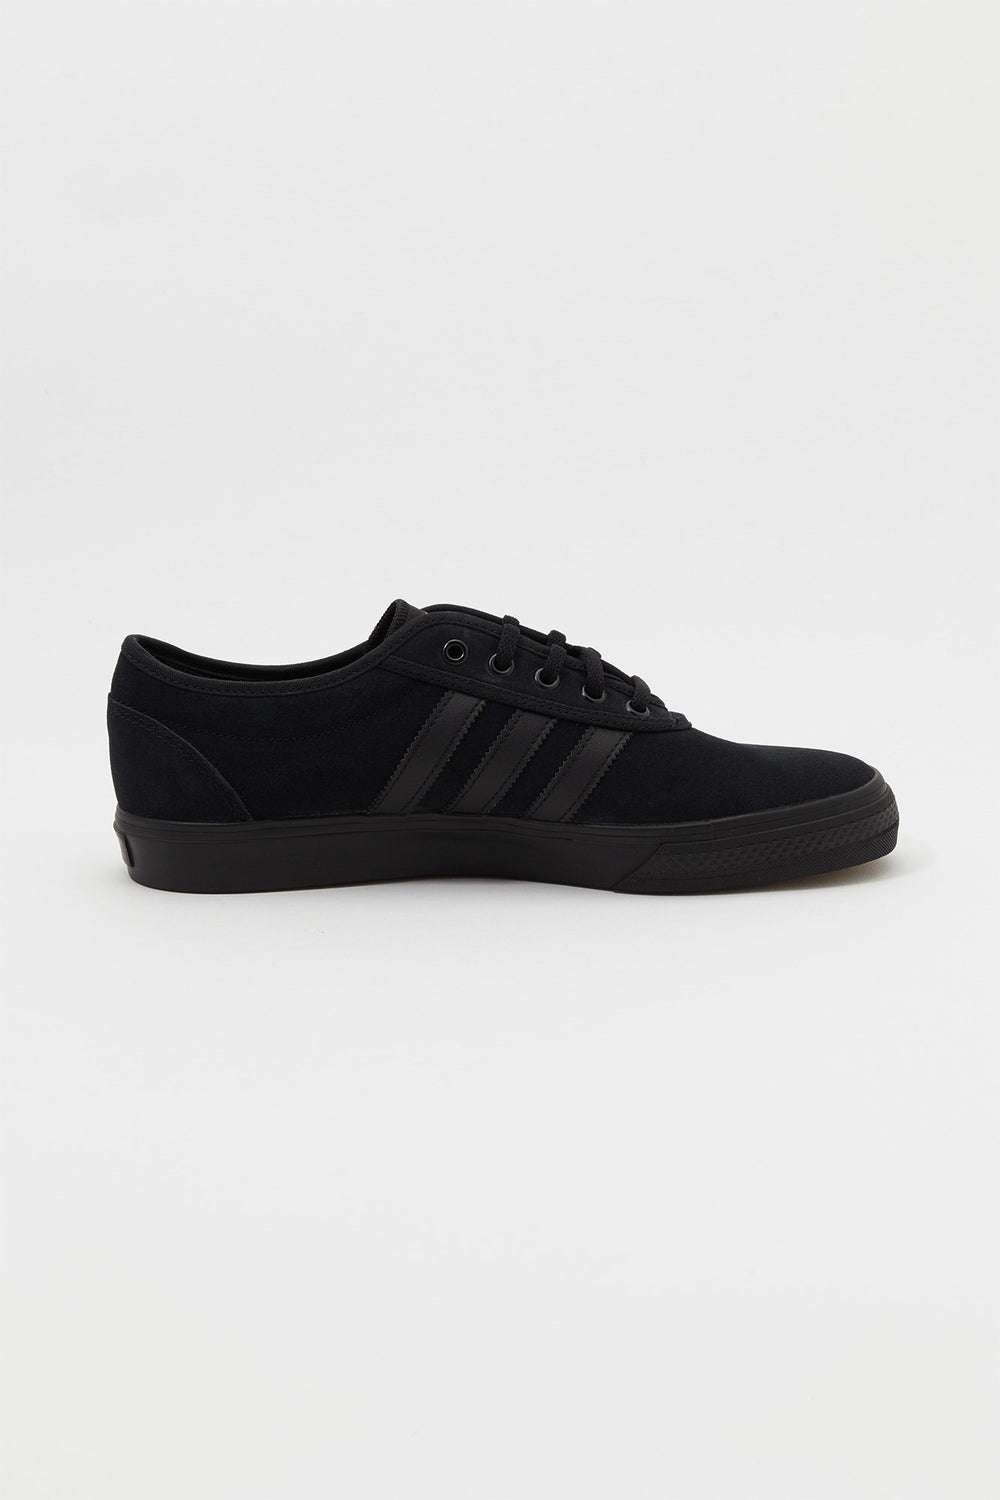 Adidas Mens Adi-Ease Skate Shoes Black